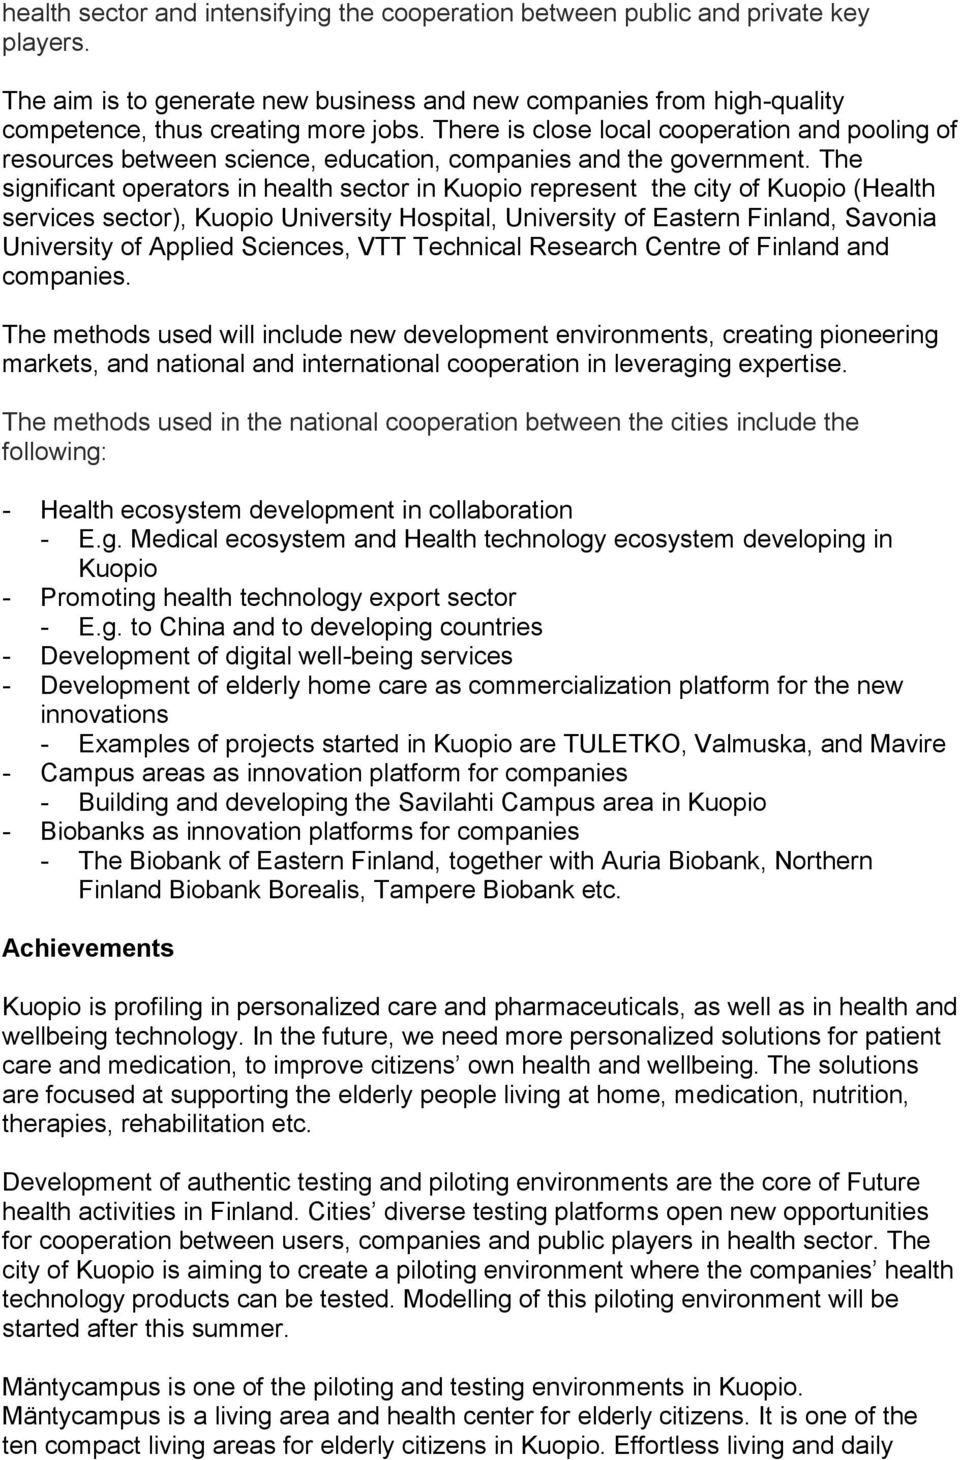 The significant operators in health sector in Kuopio represent the city of Kuopio (Health services sector), Kuopio University Hospital, University of Eastern Finland, Savonia University of Applied